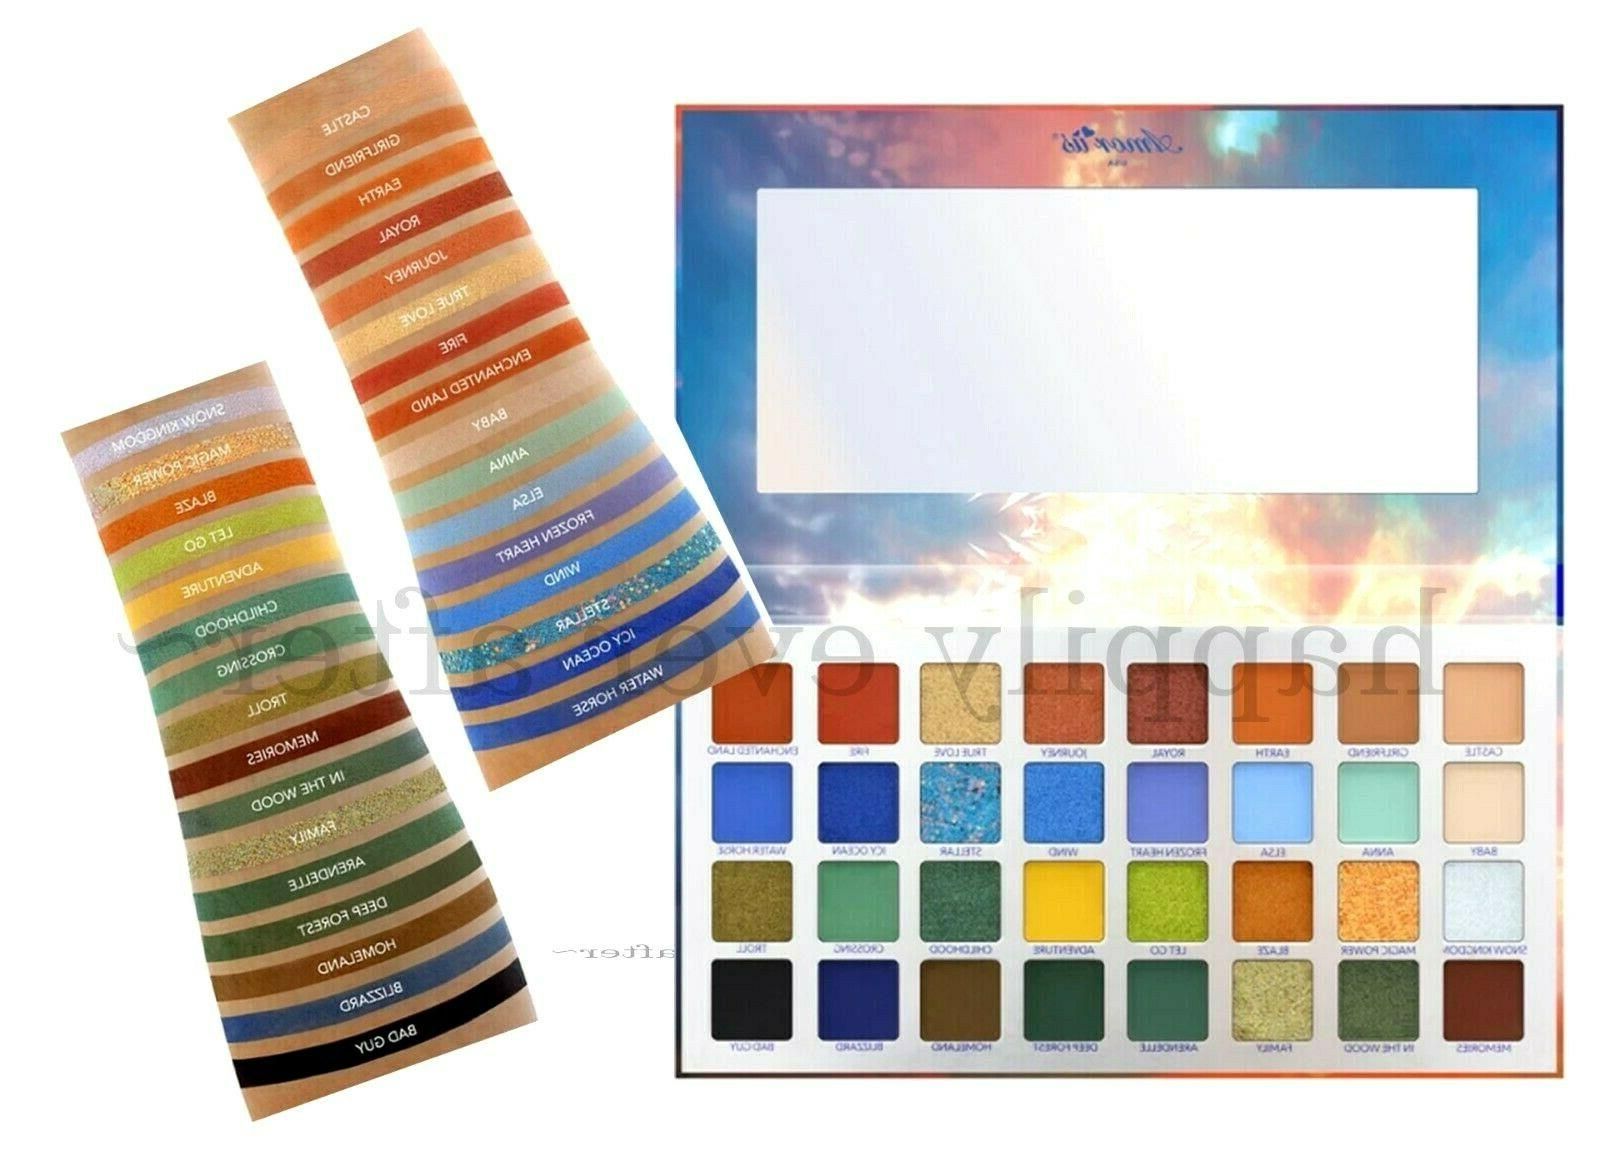 Amorus Pigmented Colors, NEW!